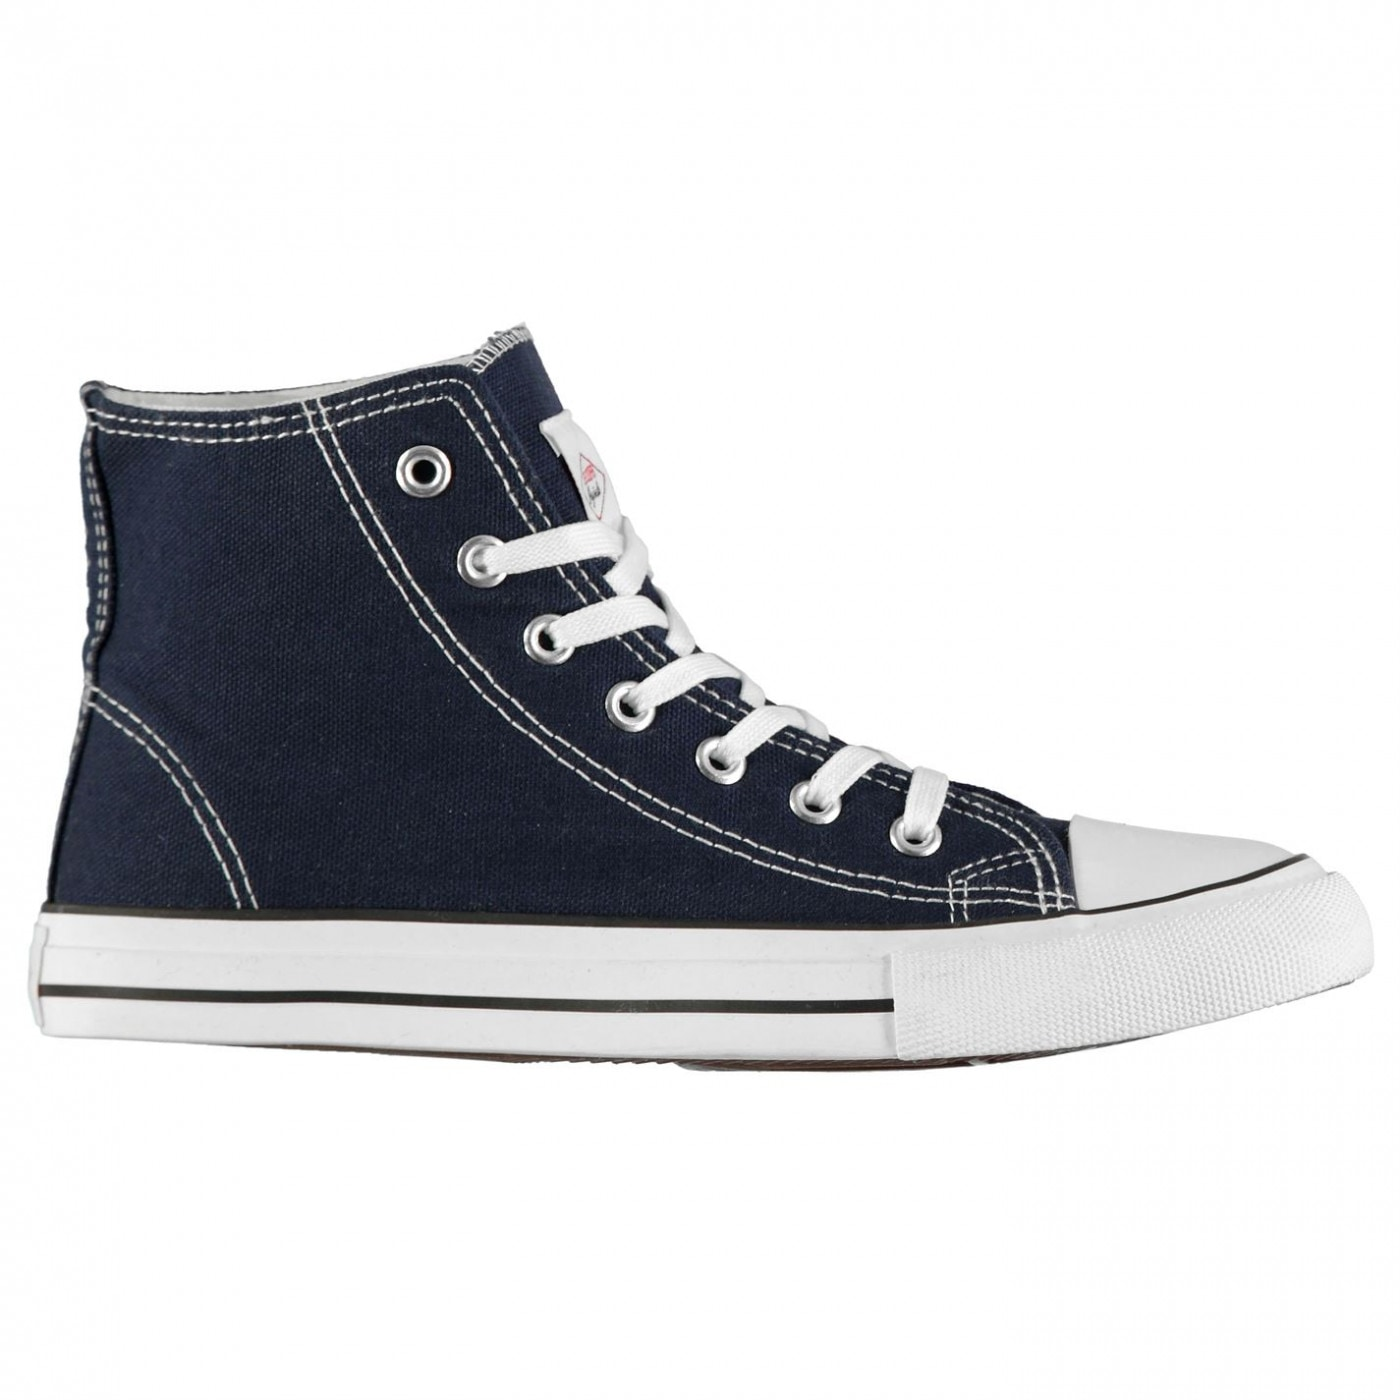 Lee Cooper C Cvs Hi Shoes Jnr98